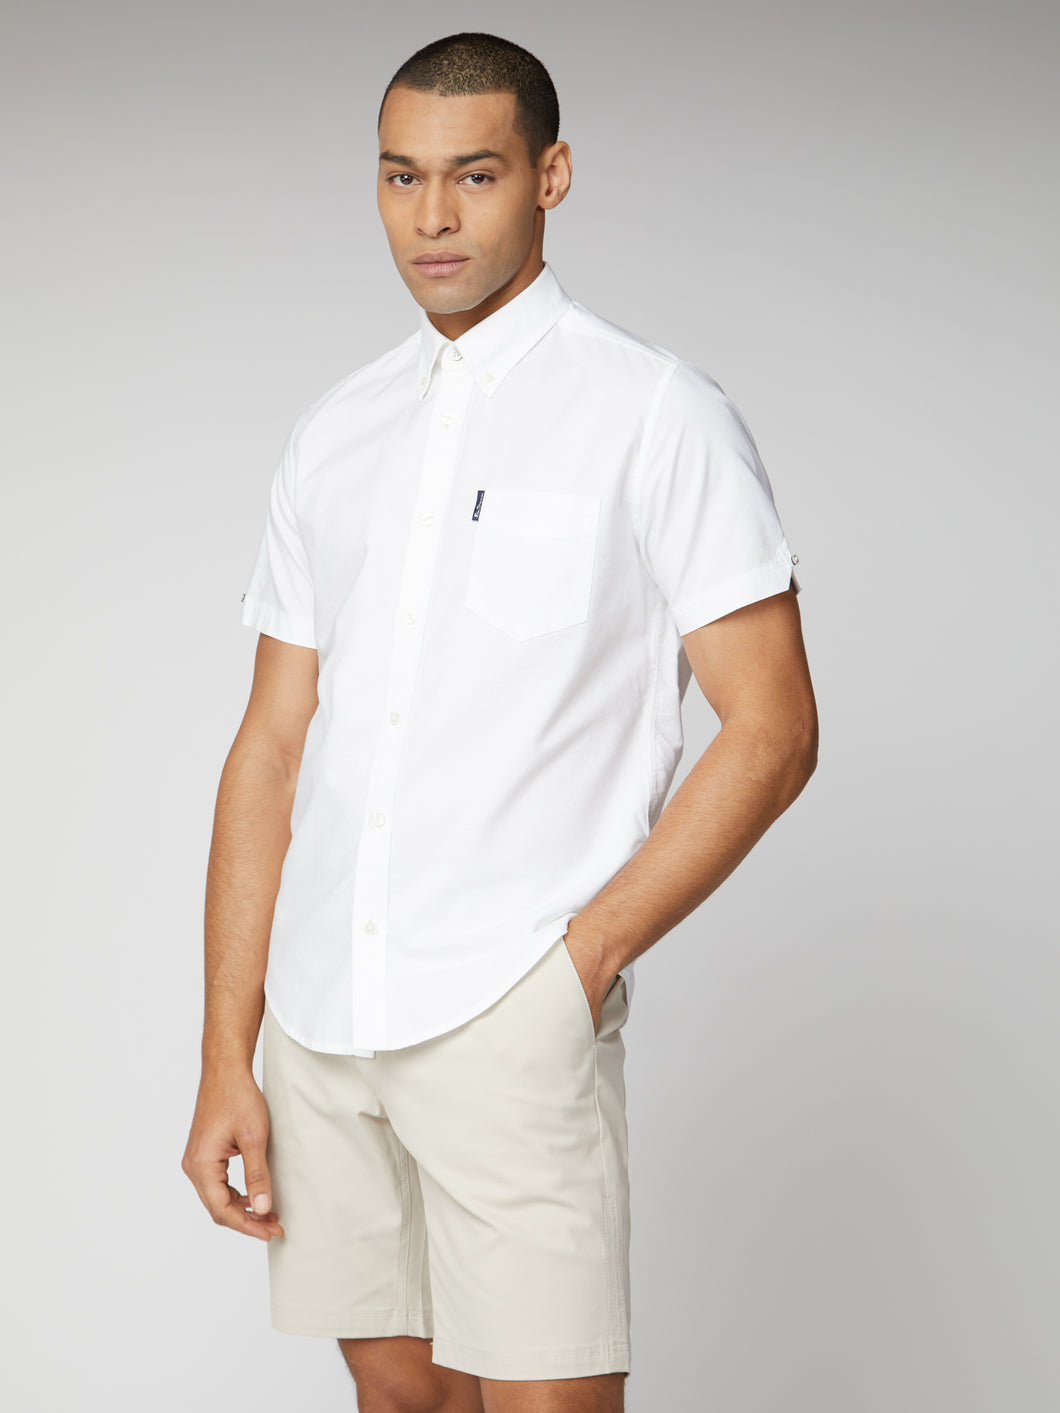 Short Sleeve Signature Oxford Shirt